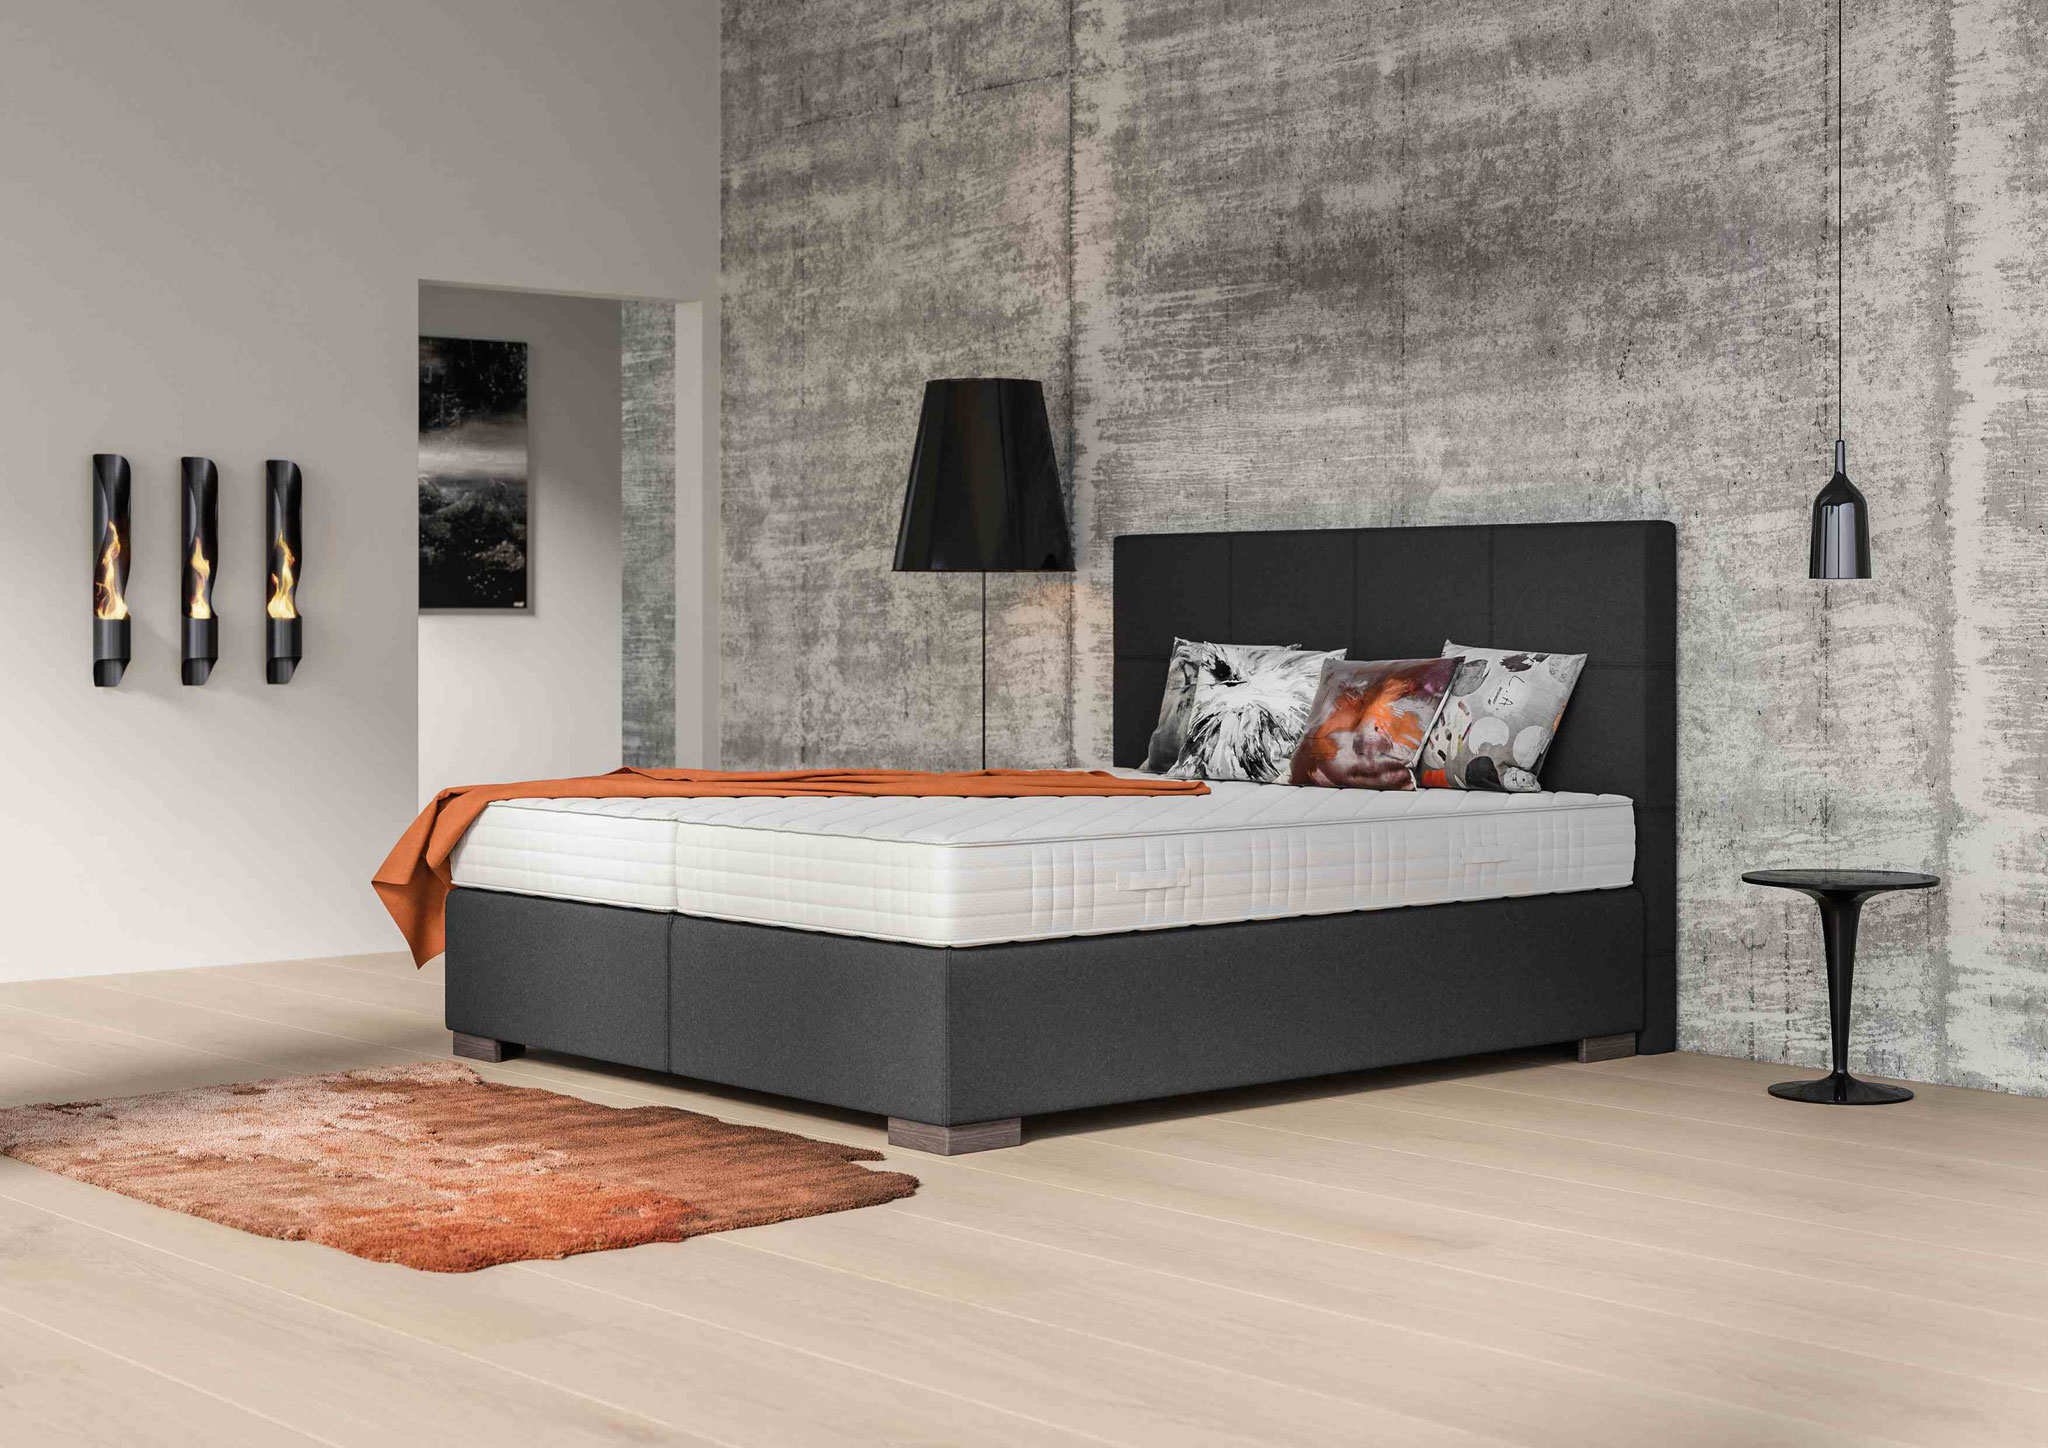 Philrouge Eos Ergo Boxspring Betten Rattan Center Ch